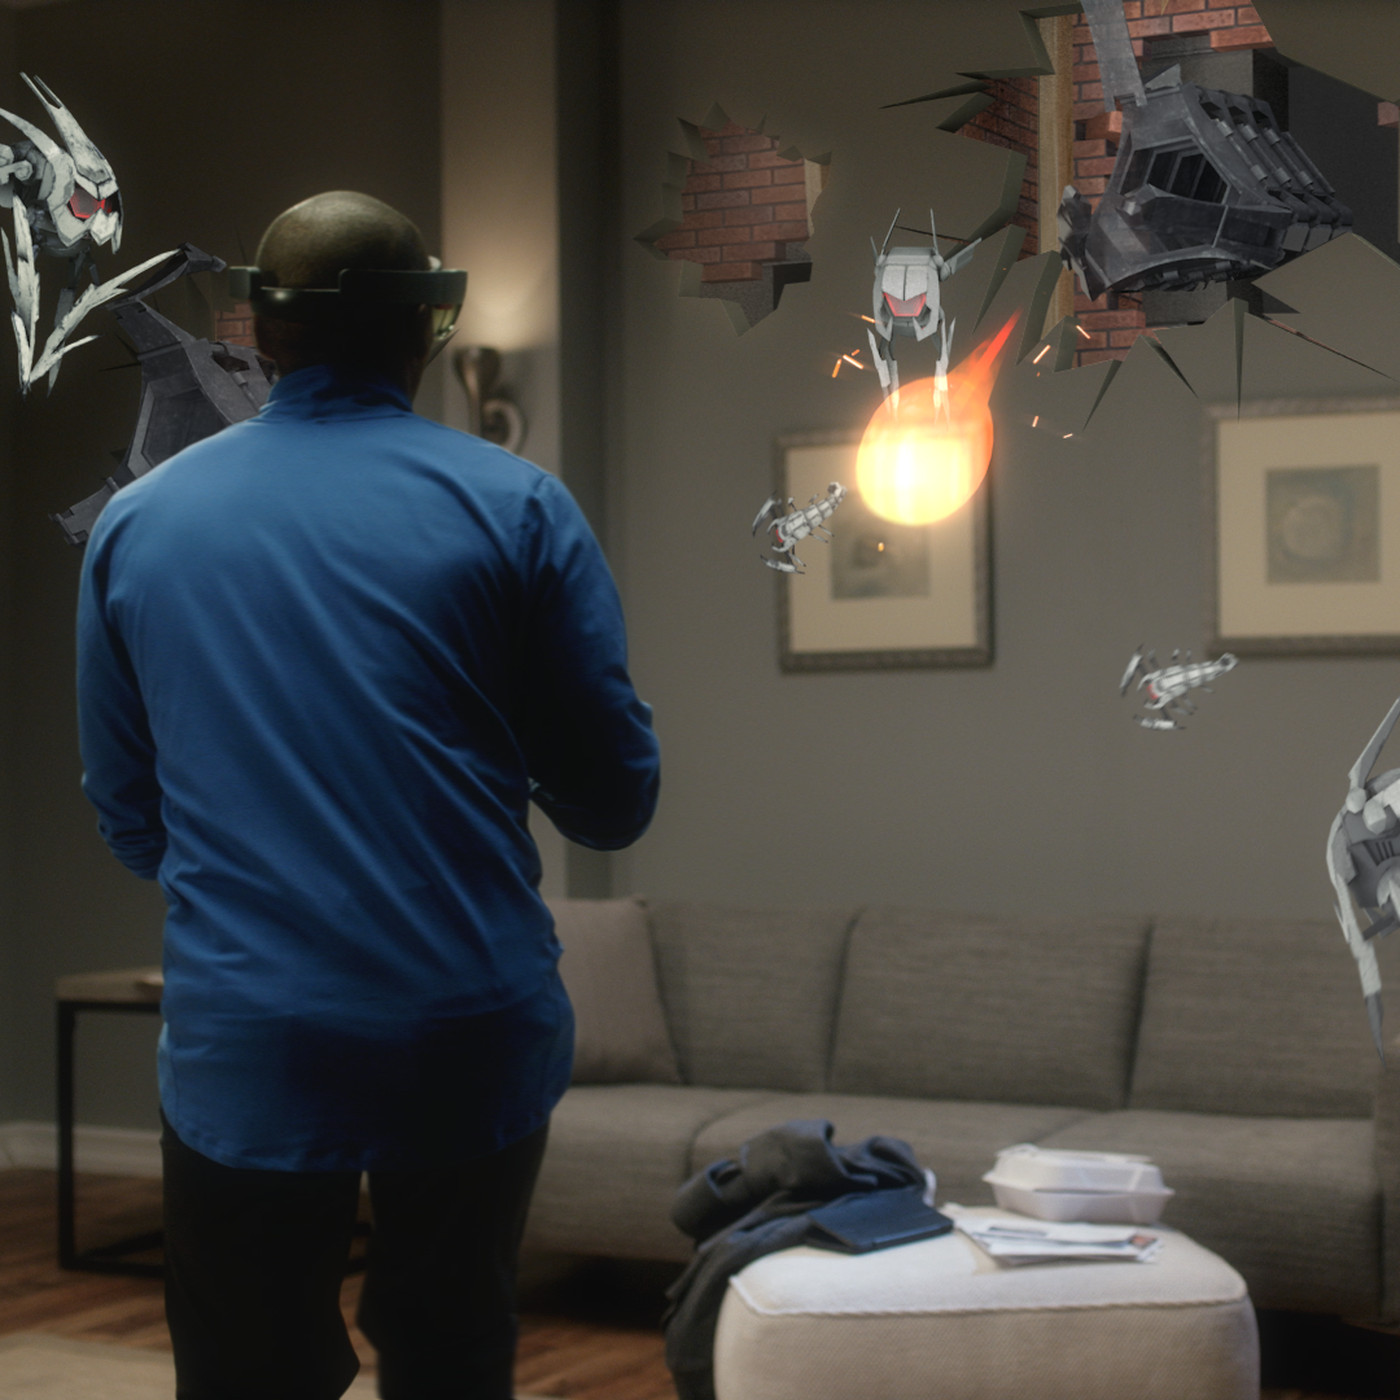 These are the first apps and games for Microsoft's HoloLens